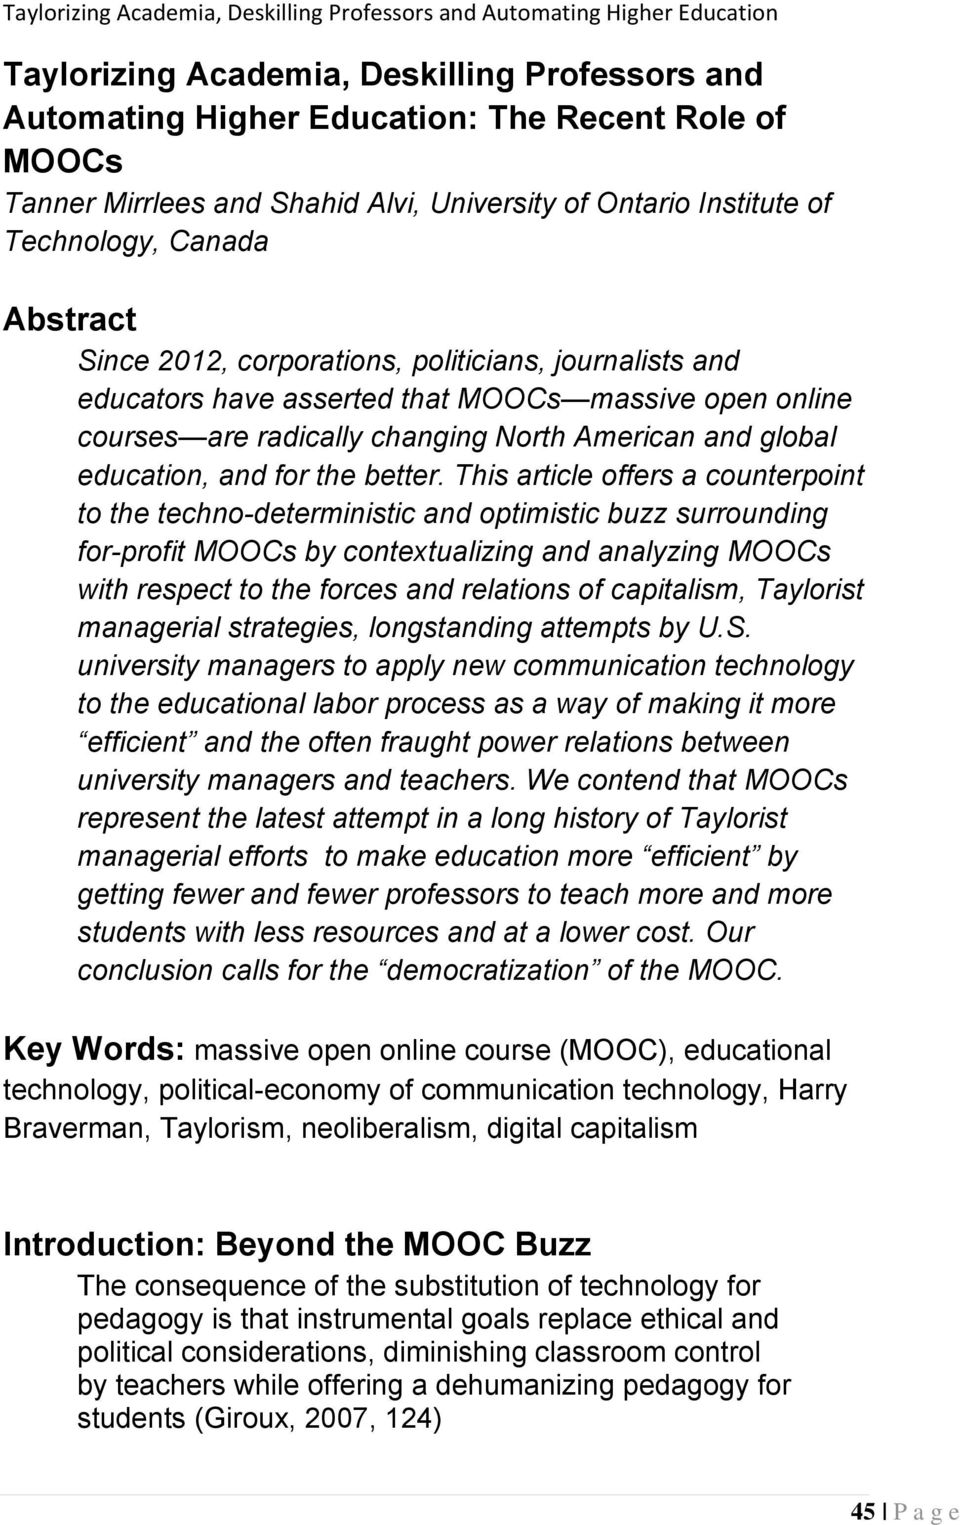 This article offers a counterpoint to the techno-deterministic and optimistic buzz surrounding for-profit MOOCs by contextualizing and analyzing MOOCs with respect to the forces and relations of